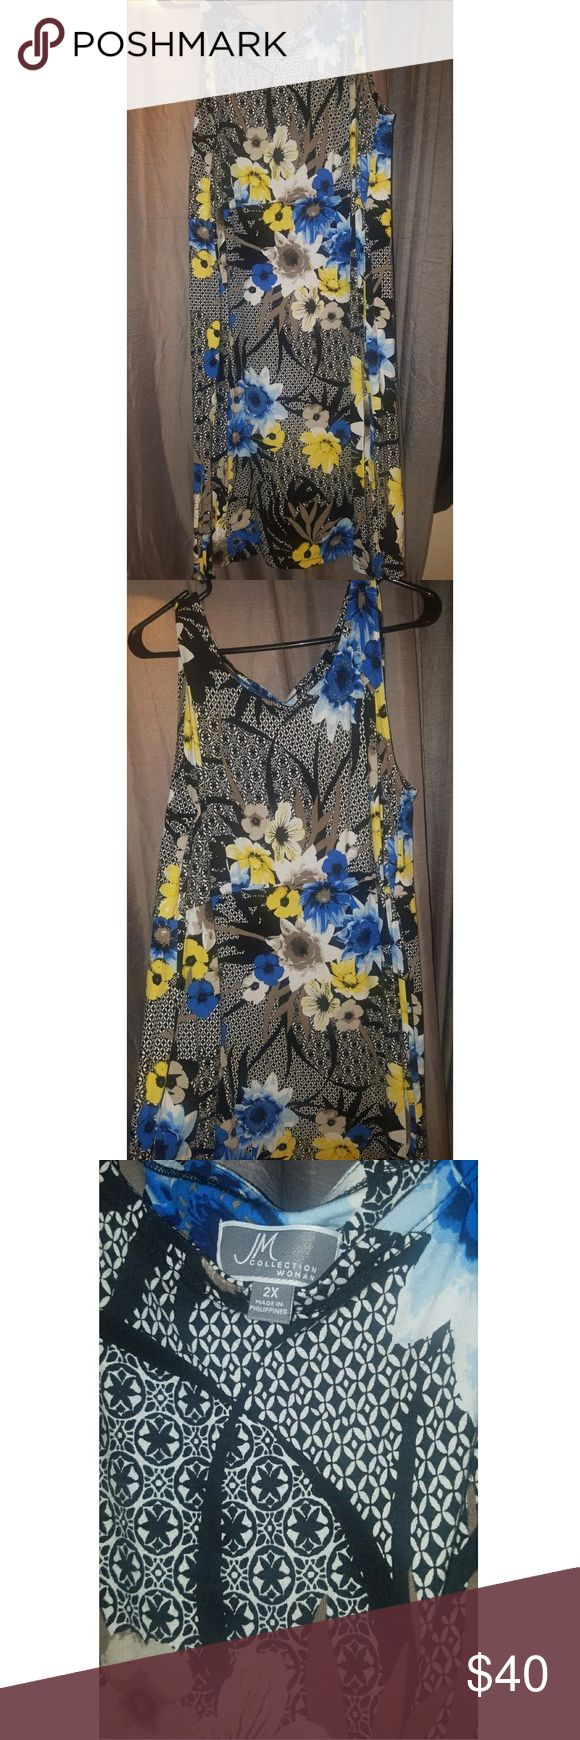 JM Floral Scuba dress 2x JM dress with blue and yellow floral prints set against black and white. Super soft material that resembles a bodycon dress. Purchased from Macy's. Used only once for an interview (I got the job!). Dresses Strapless